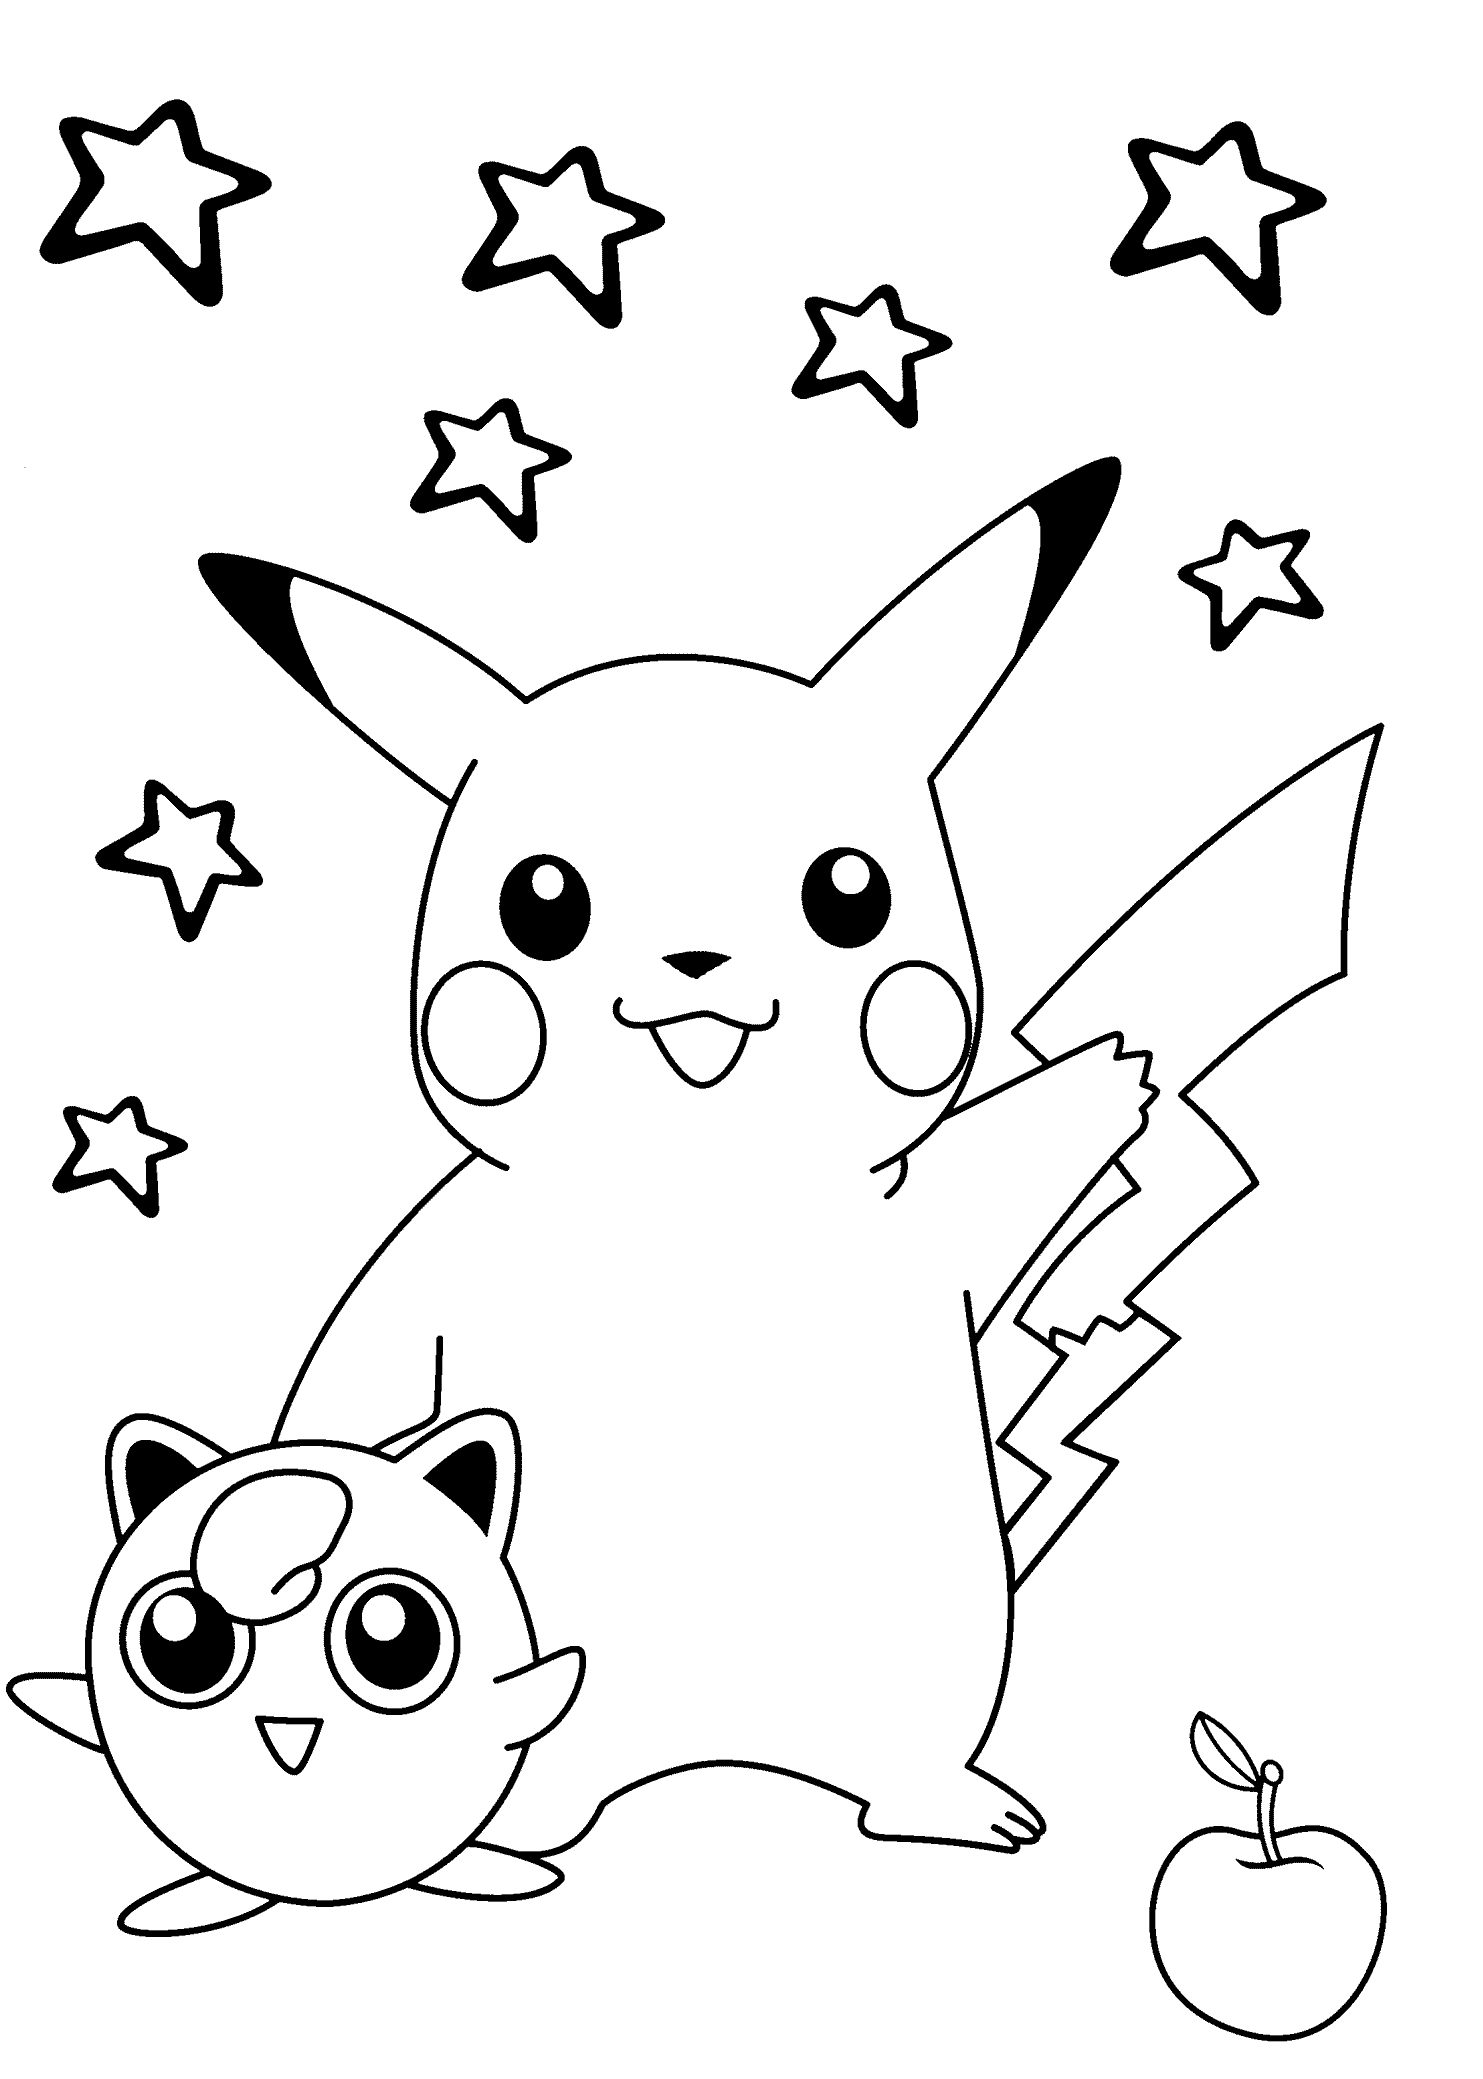 1483x2079 New Free Printable Pikachu Coloring Pages Collection Free